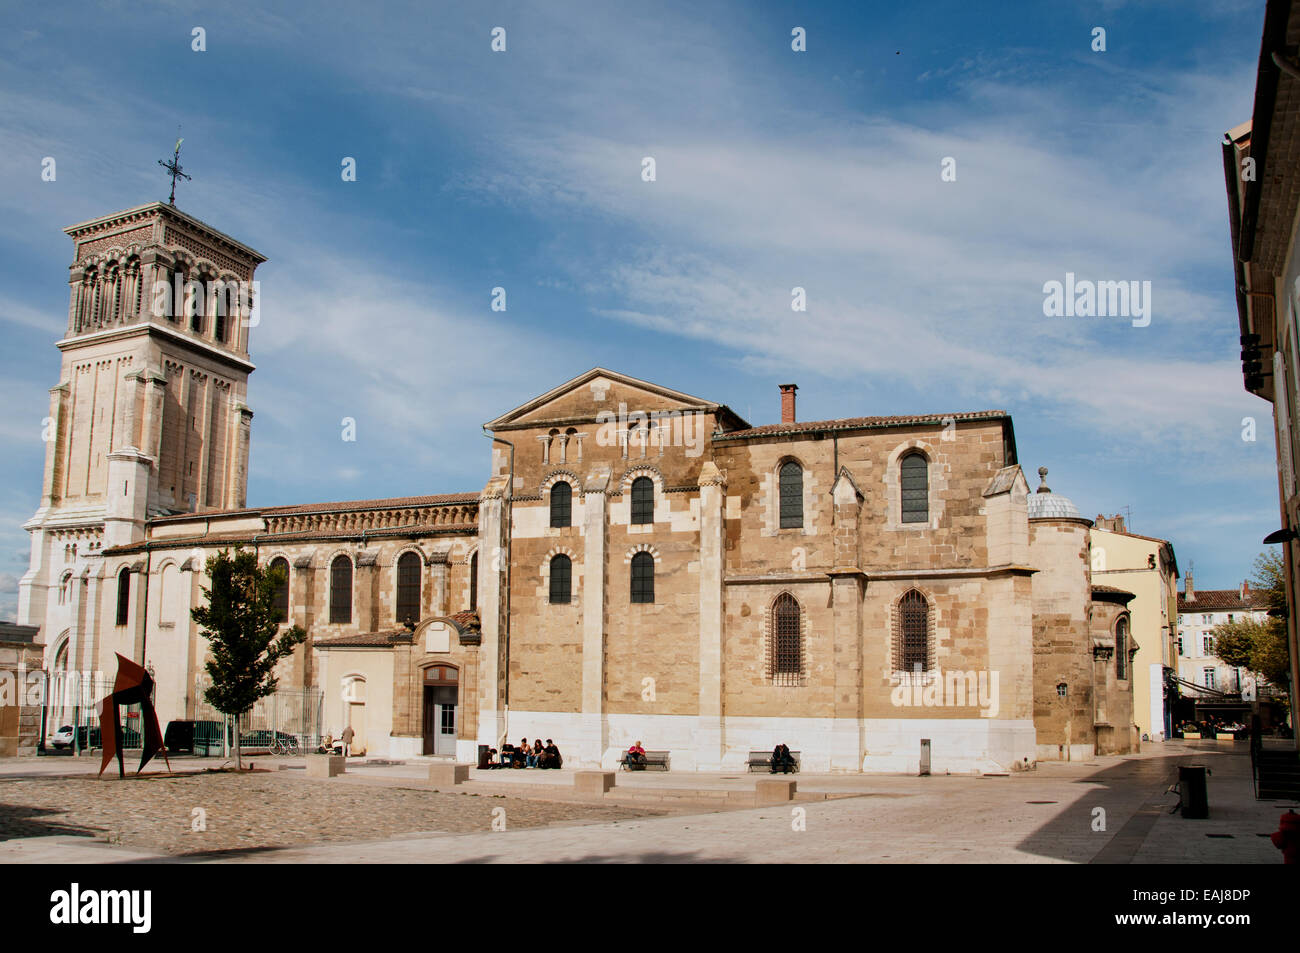 Roman Catholic Diocese of Valence Cathedral France - Stock Image